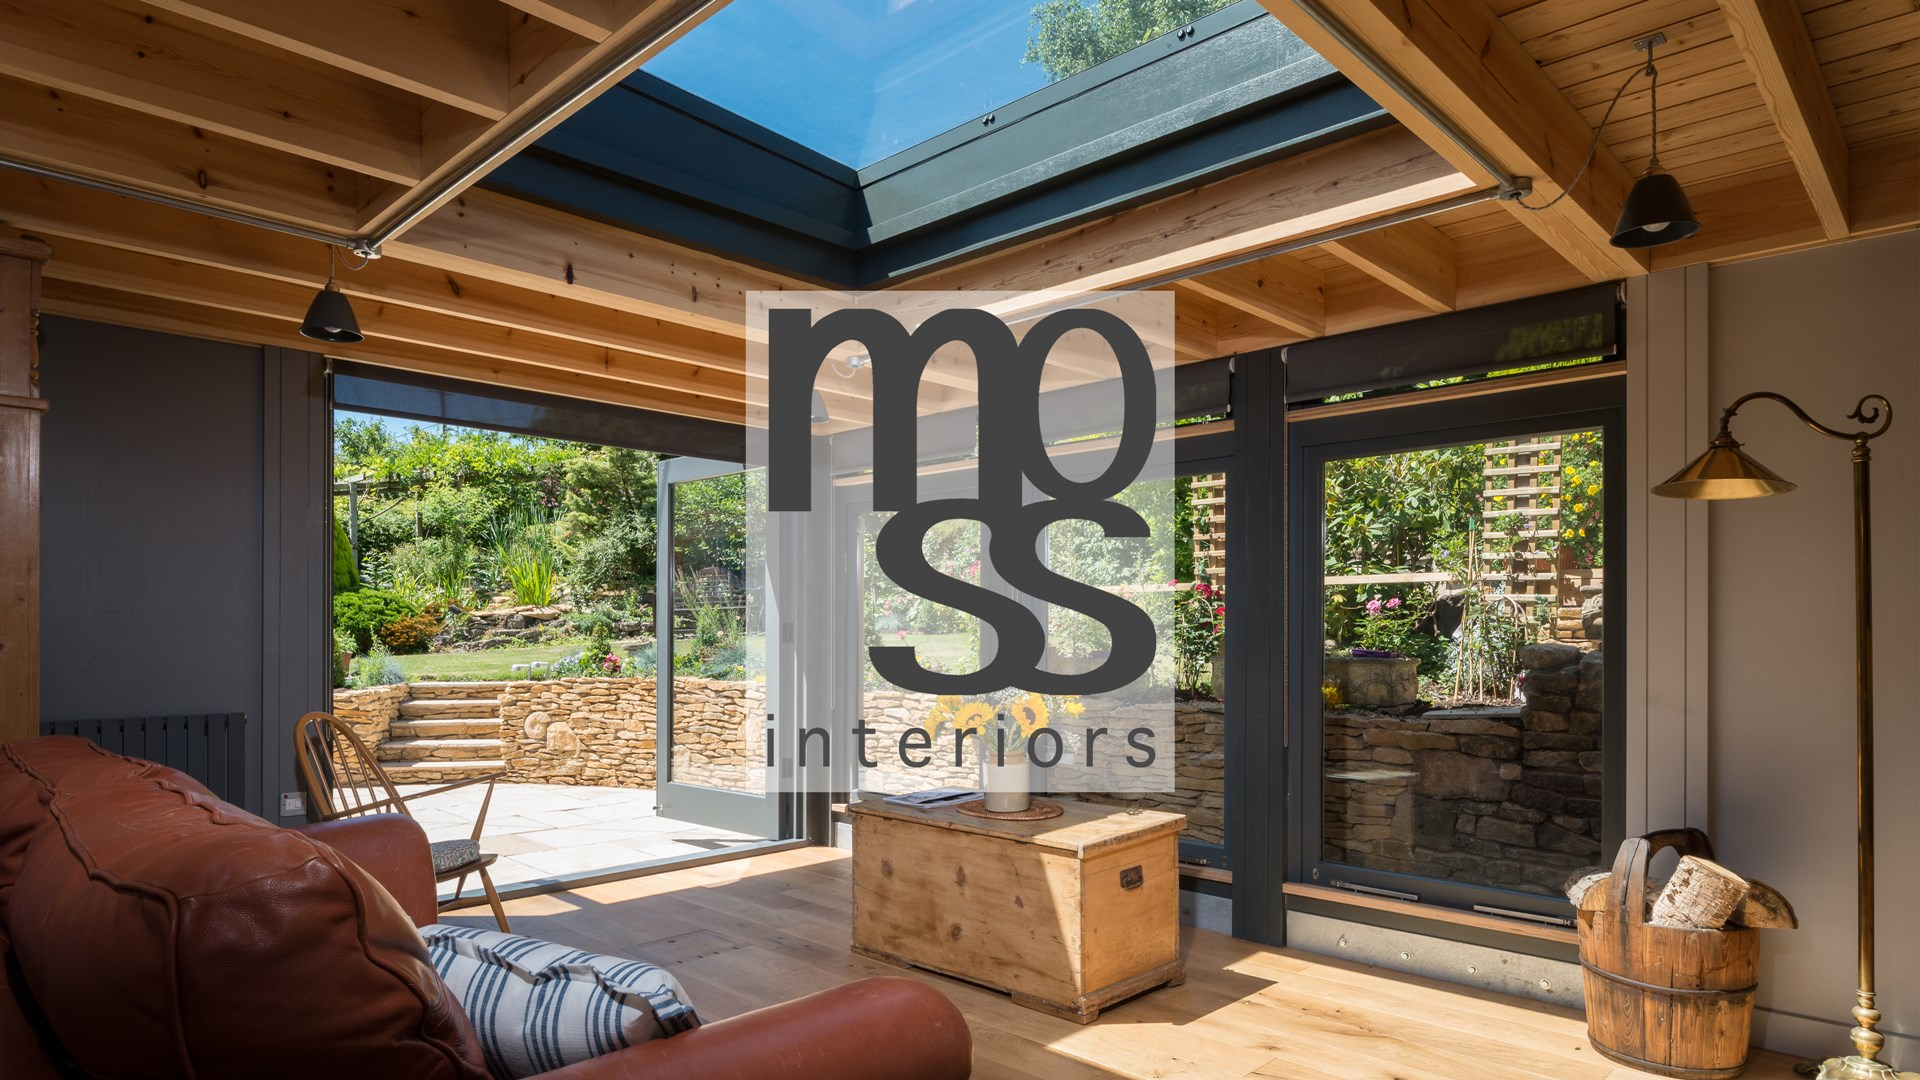 Interior Design of Garden Rooms Home Offices and Glamping Pods